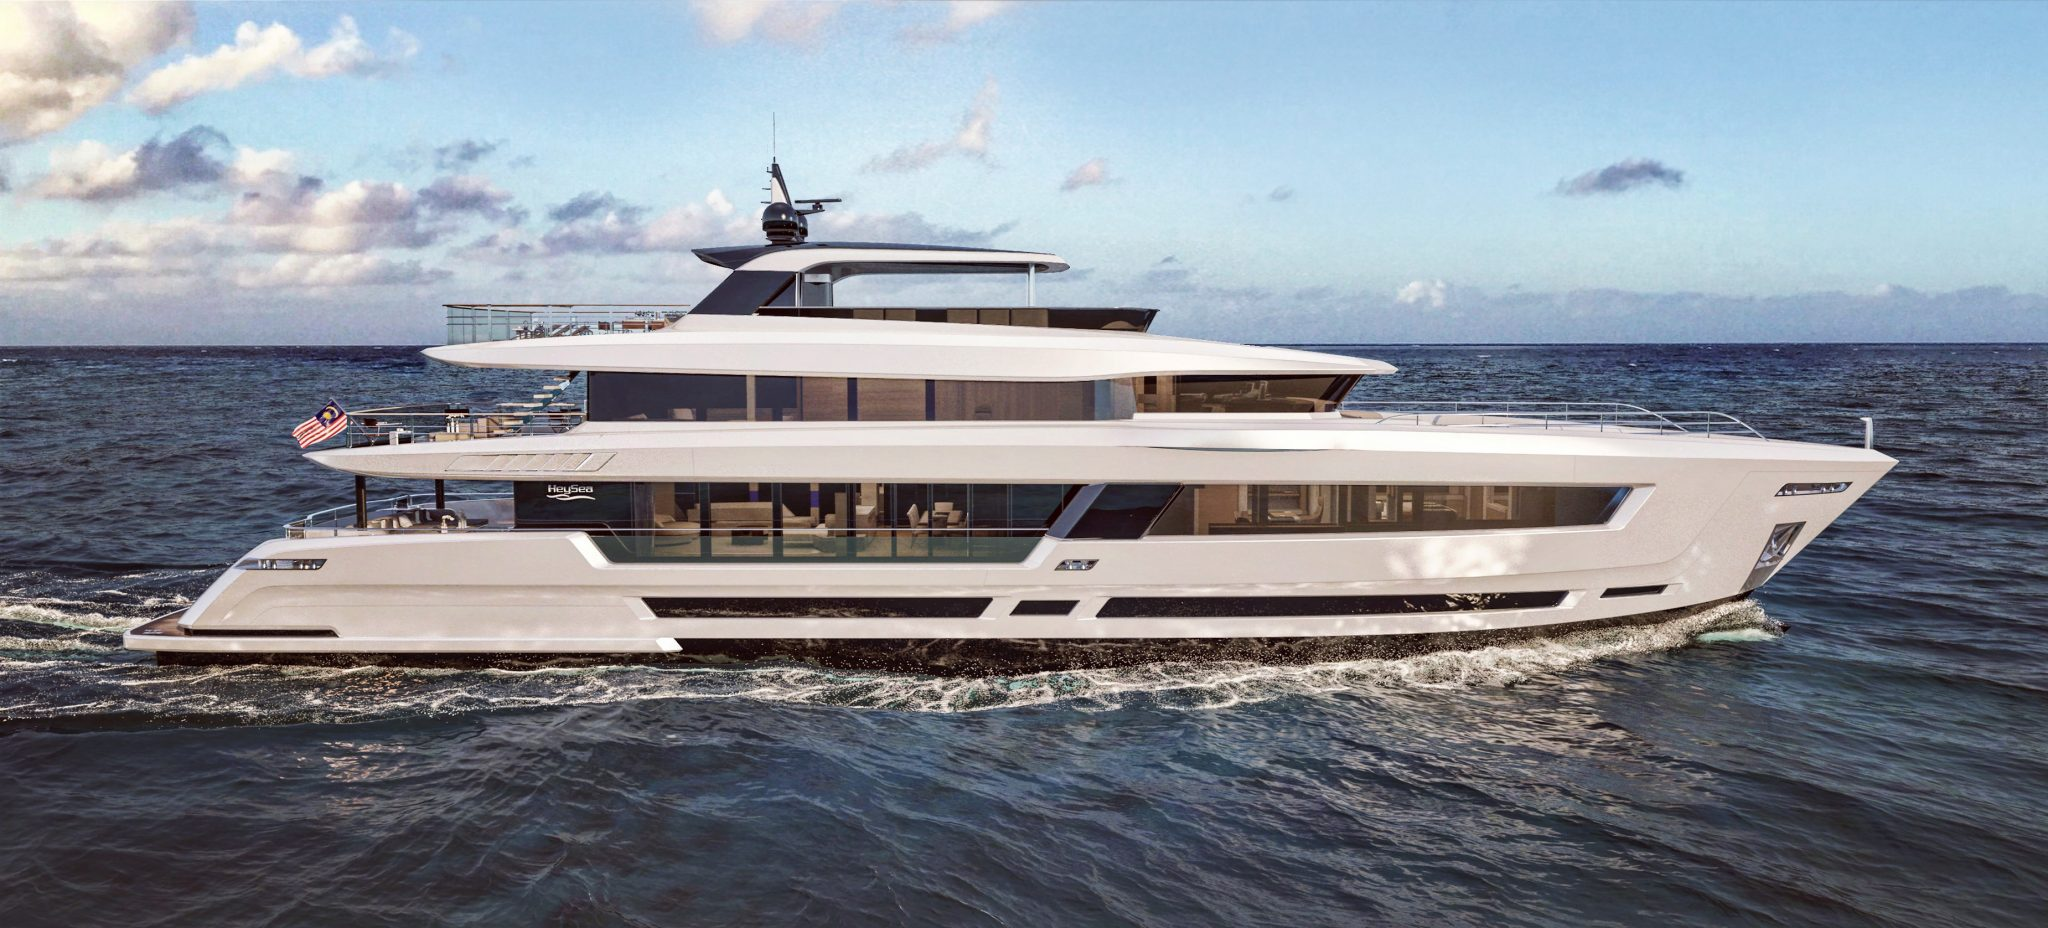 Heysea Asteria 139 Exterior Design Side Render